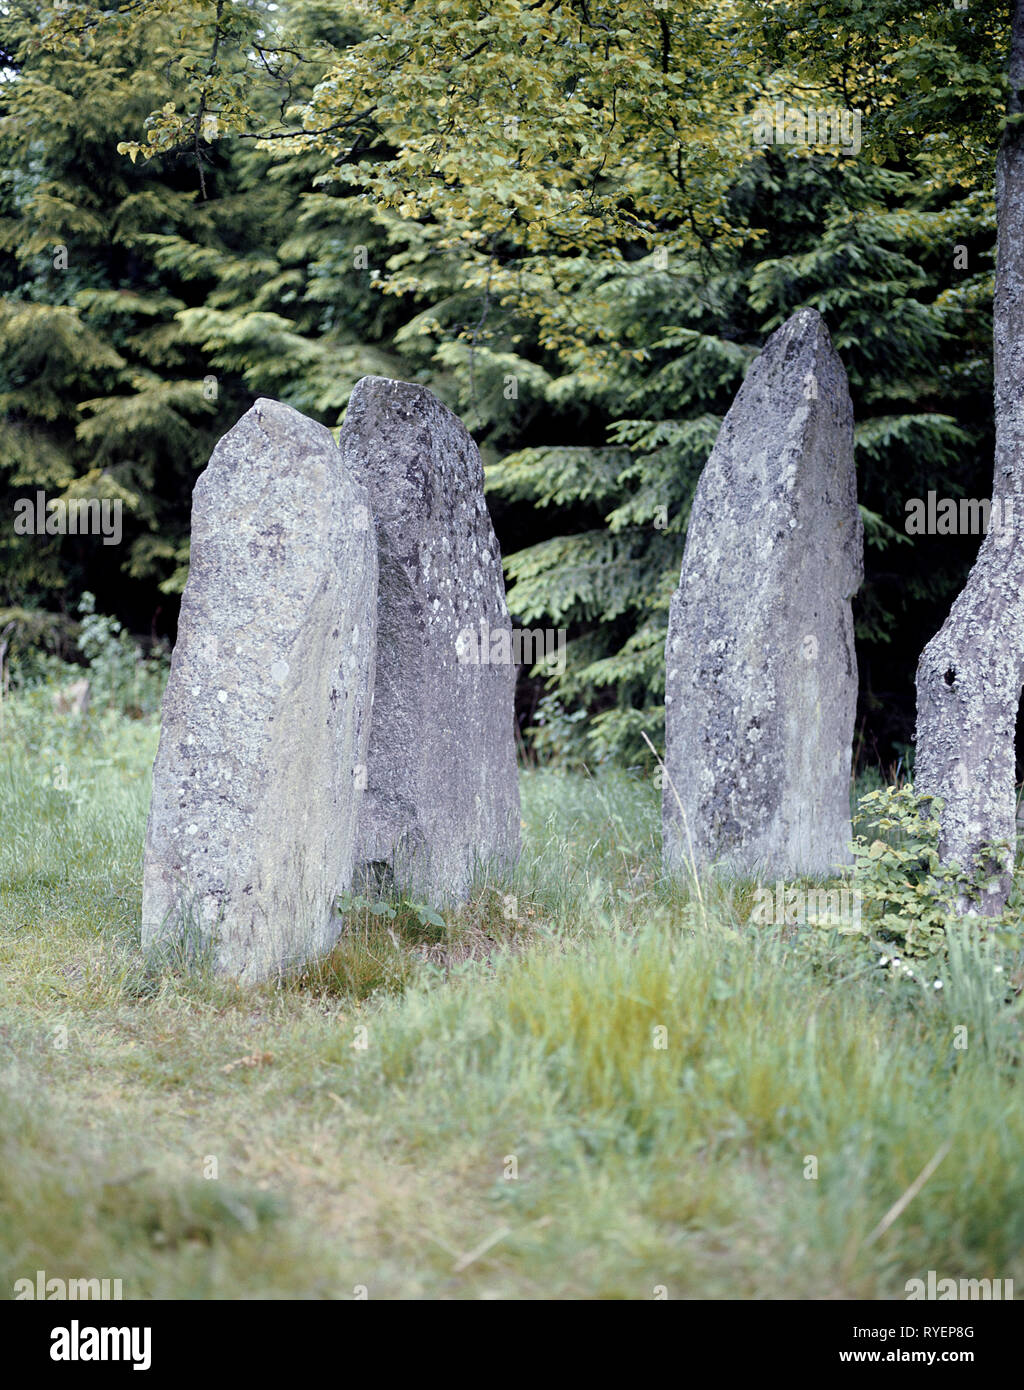 prehistory, megalith / dolmen, prehistorical Bauta stones near Hjortbakke, Bornholm, Additional-Rights-Clearance-Info-Not-Available - Stock Image